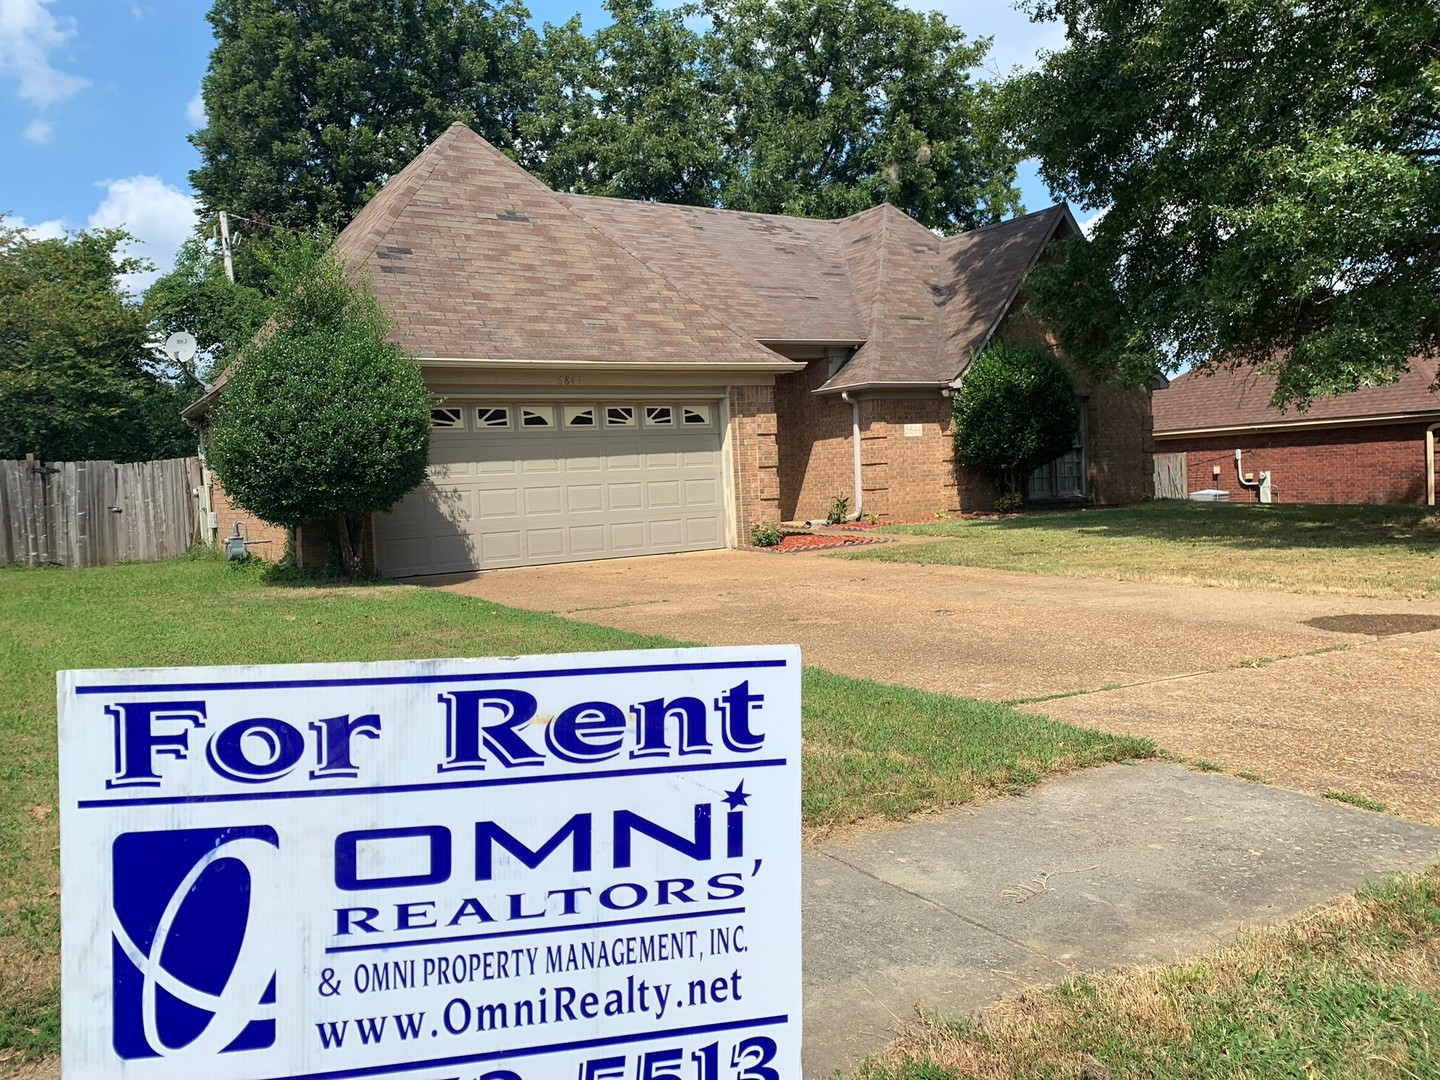 Terrific Available Rentals Omni Property Management Inc Home Interior And Landscaping Palasignezvosmurscom